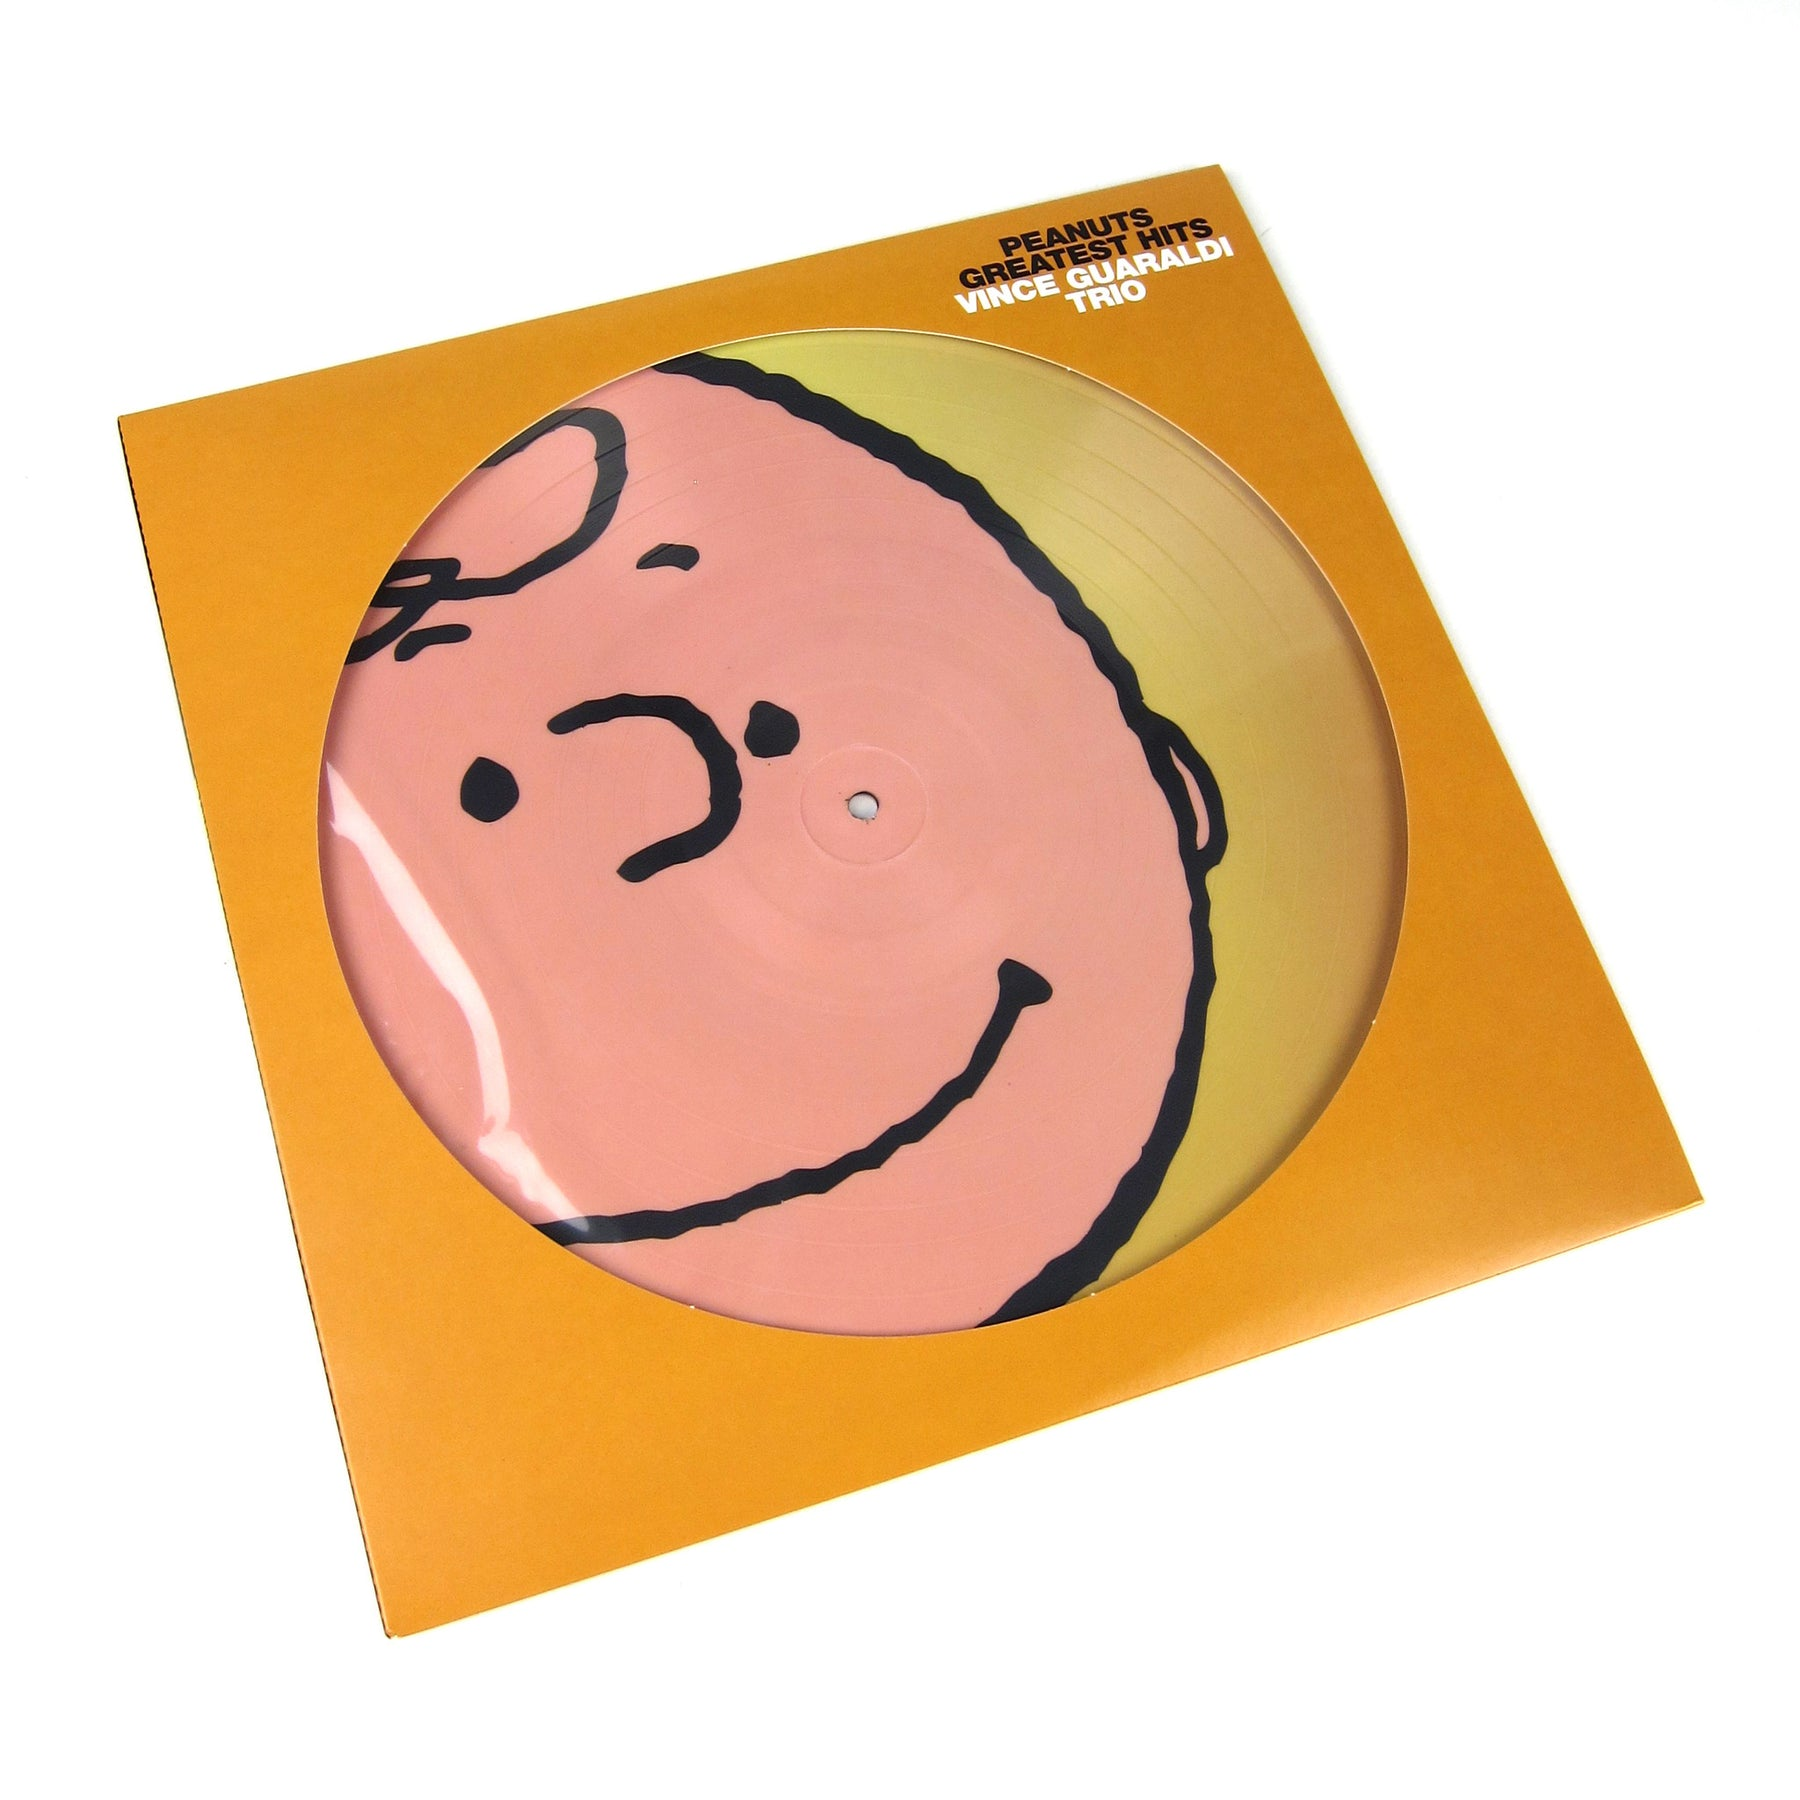 Vince Guaraldi Trio Peanuts Greatest Hits Pic Disc